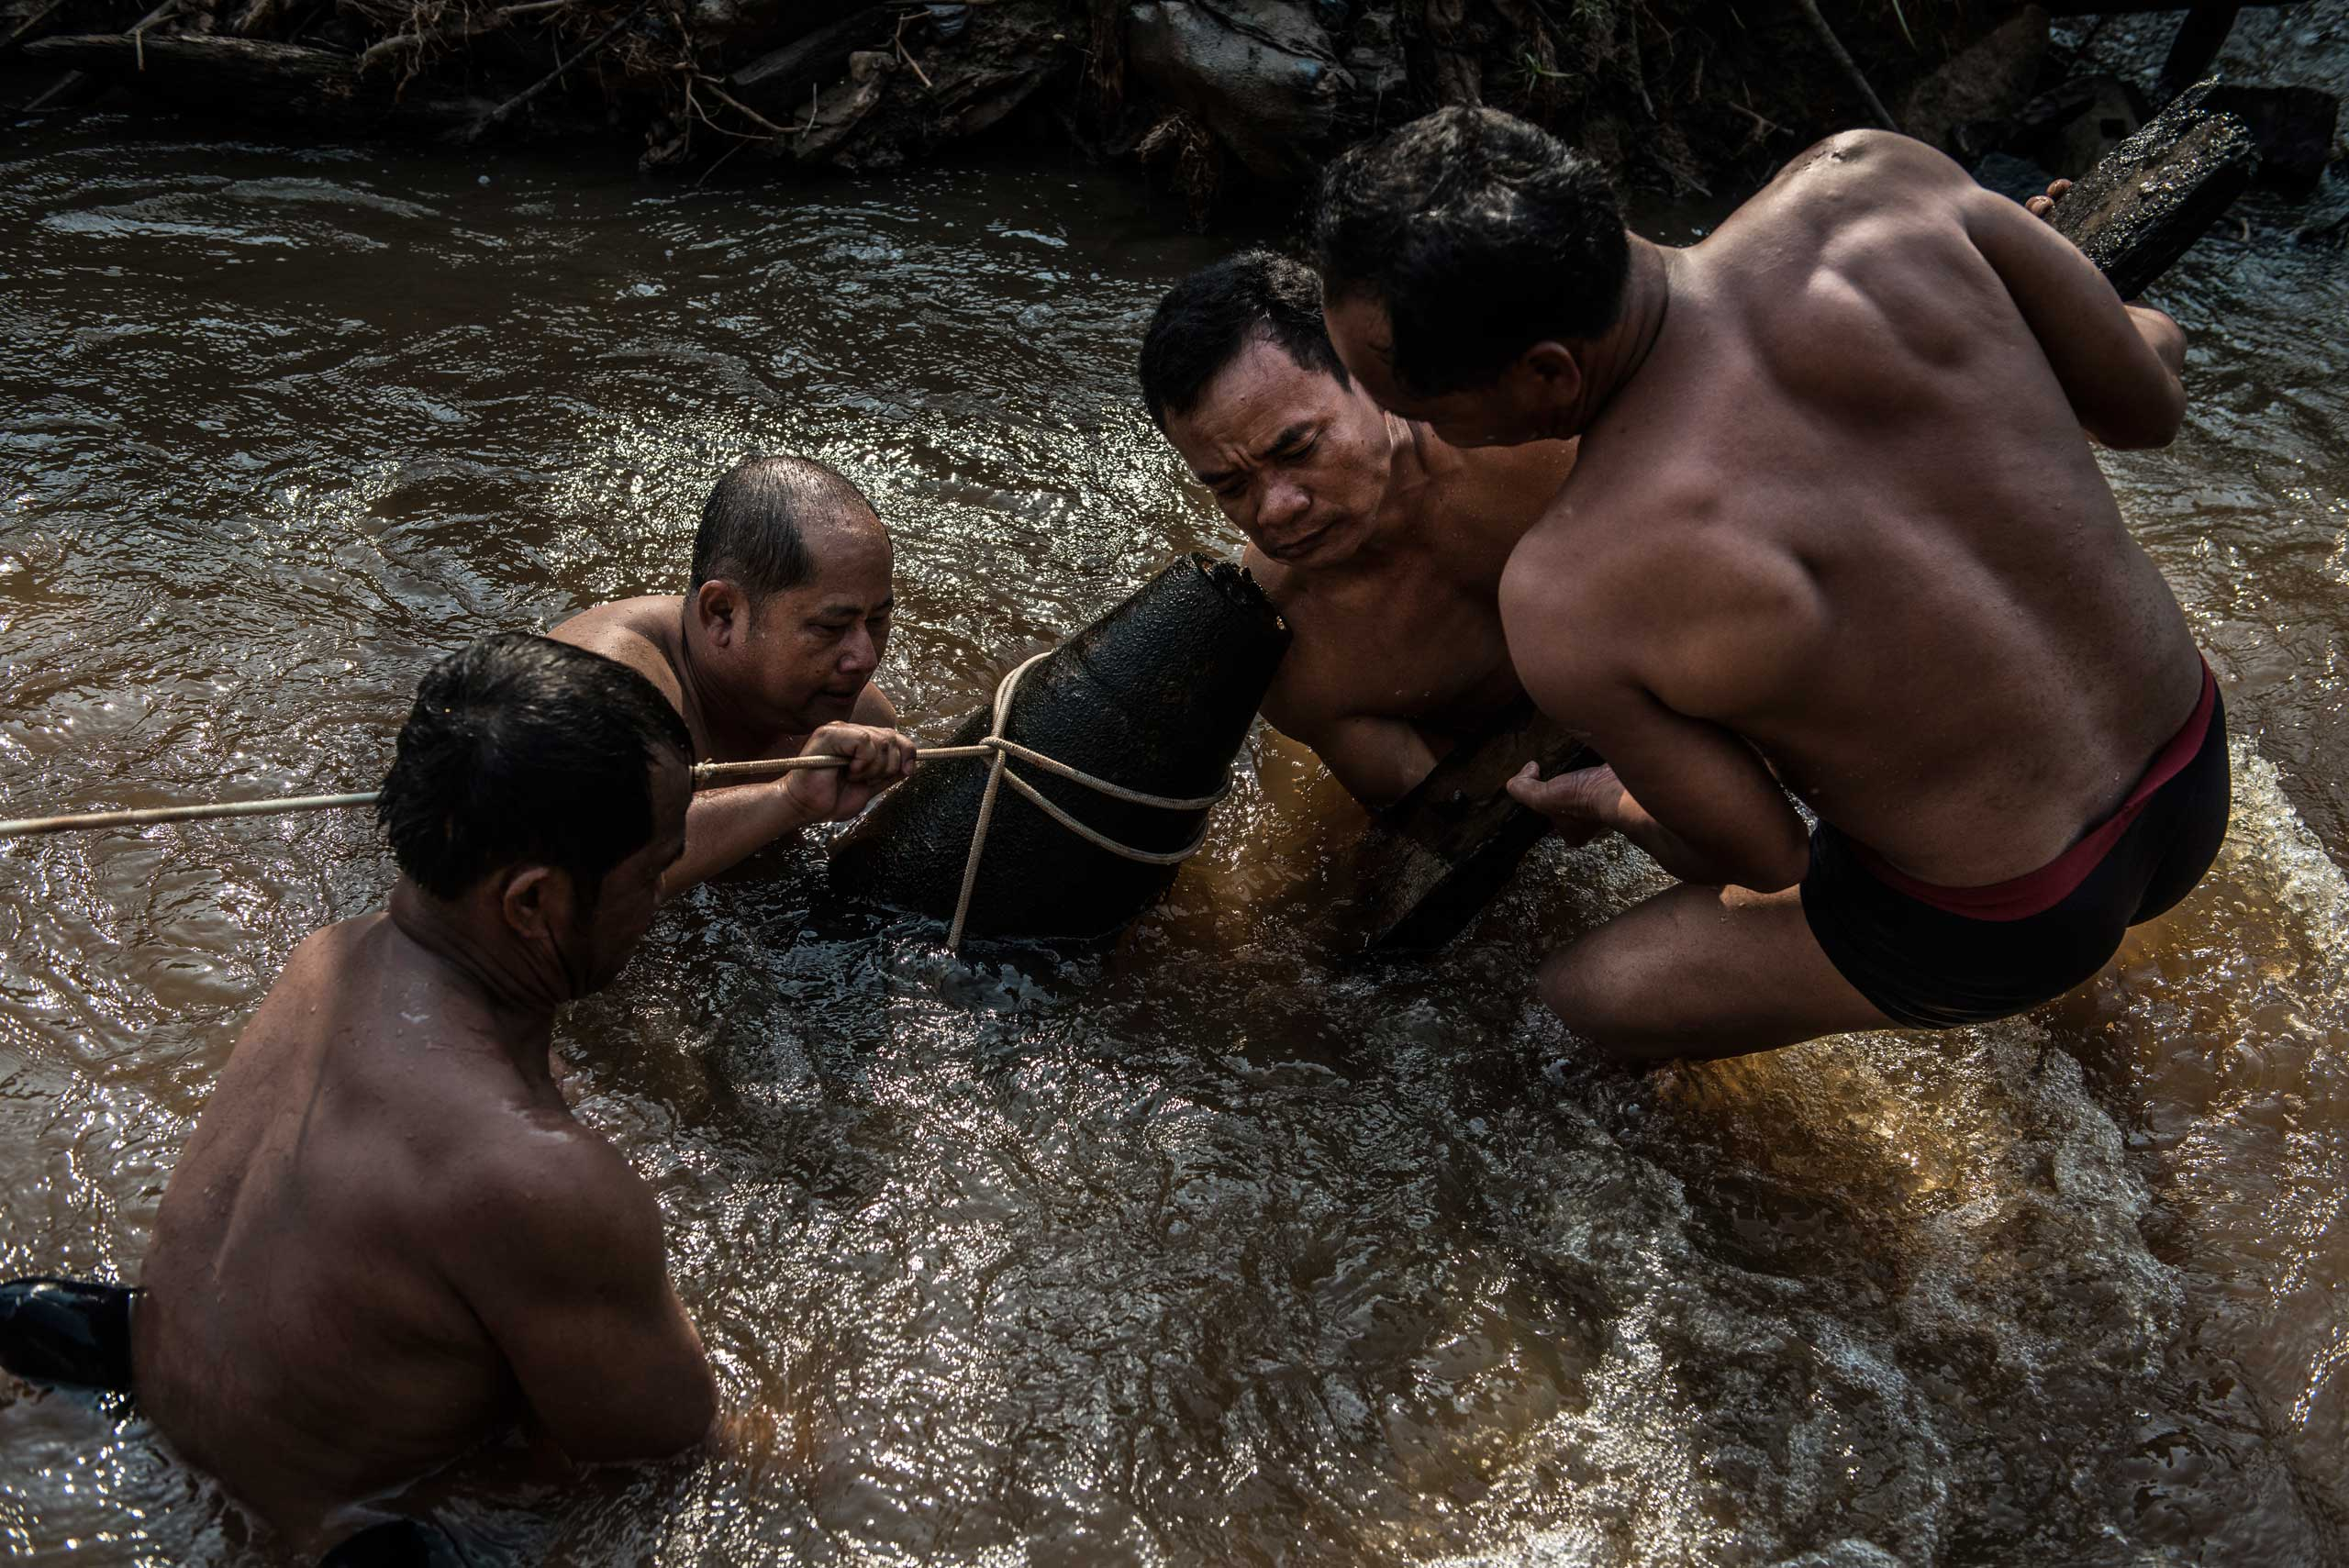 The UXO salvage dive team handles an unexploded 1000 pound bomb found in a river in Kratie Province, Cambodia in April 2015.